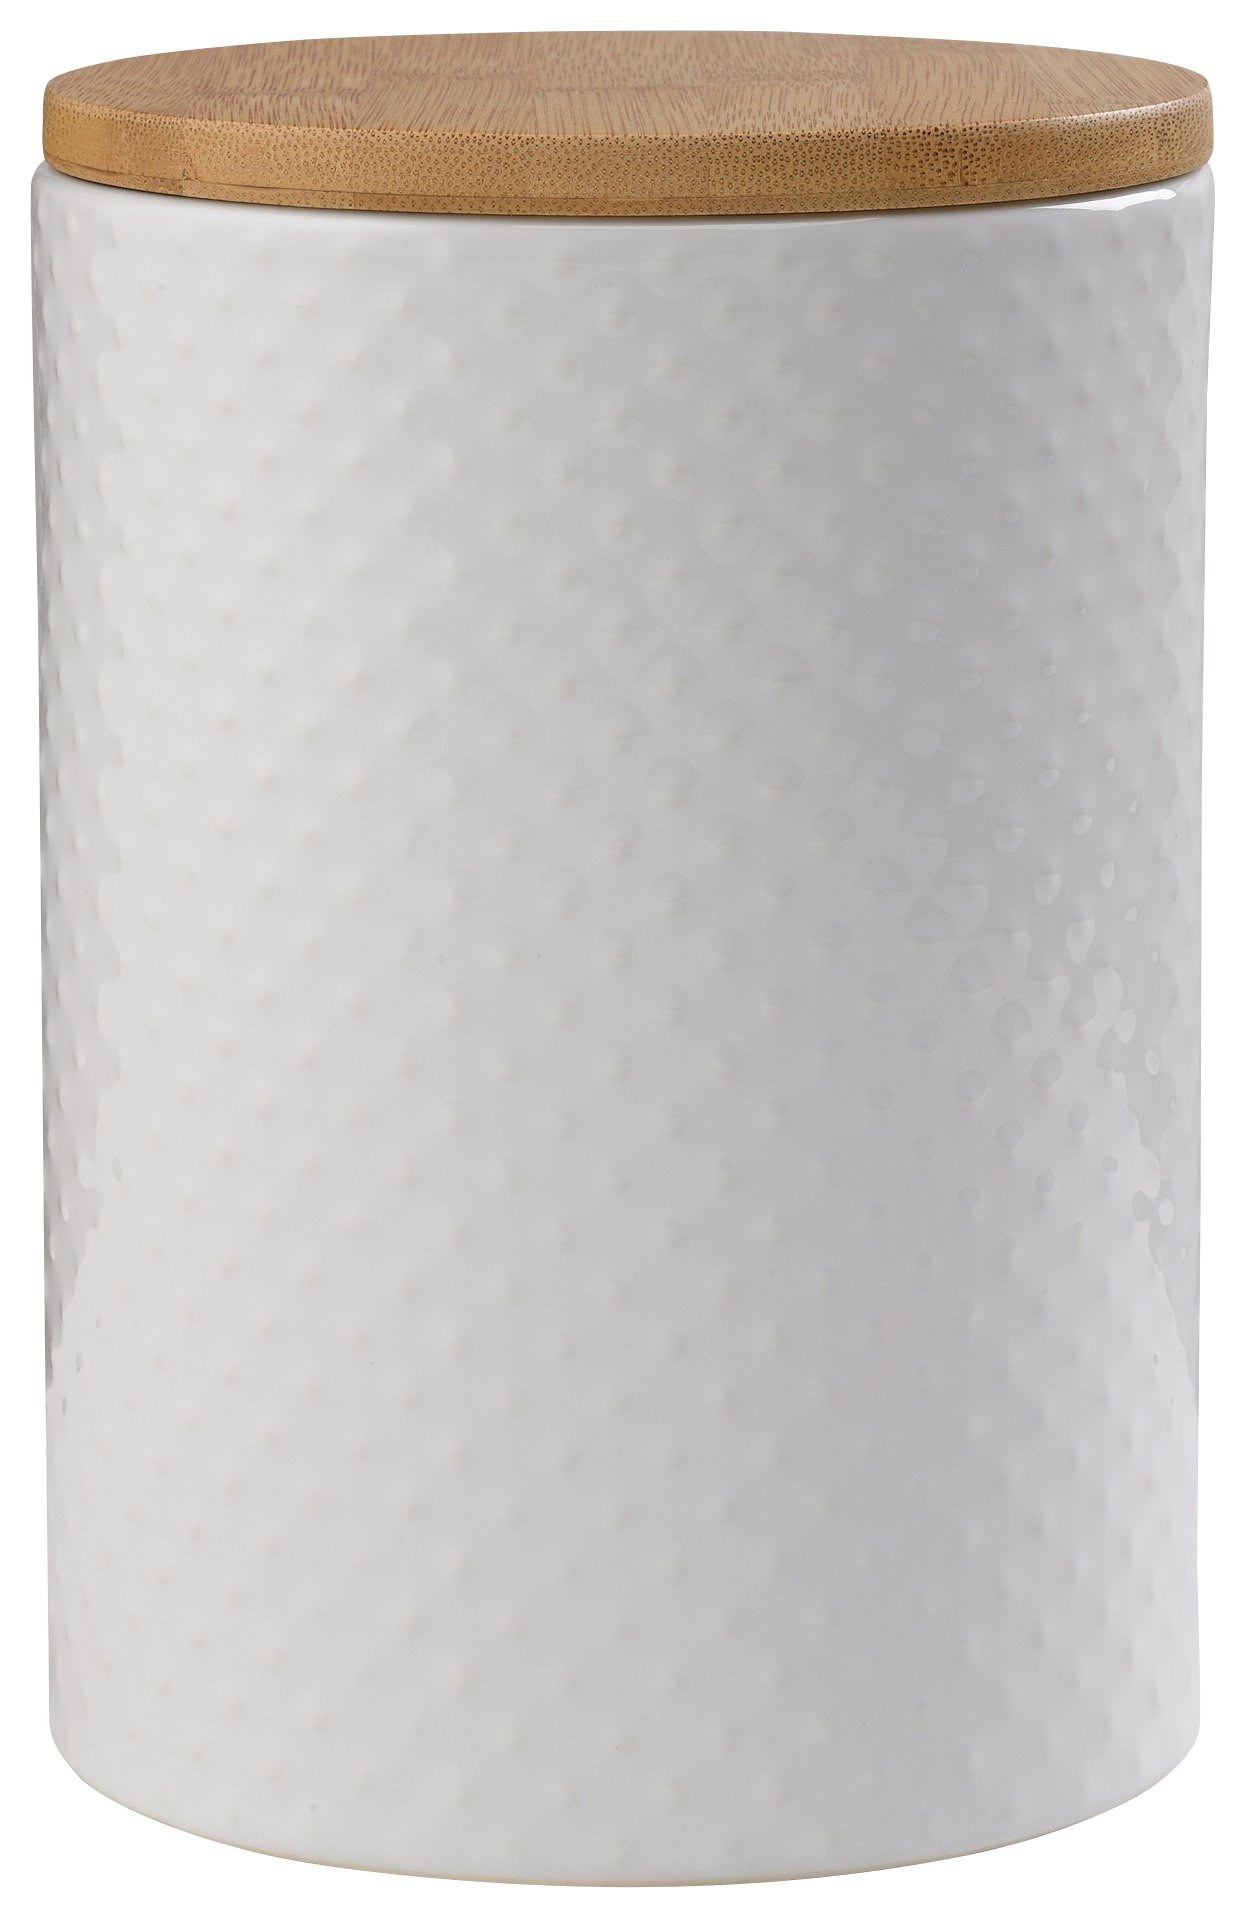 Heart of House - Veda Textured Biscuit Jar - White